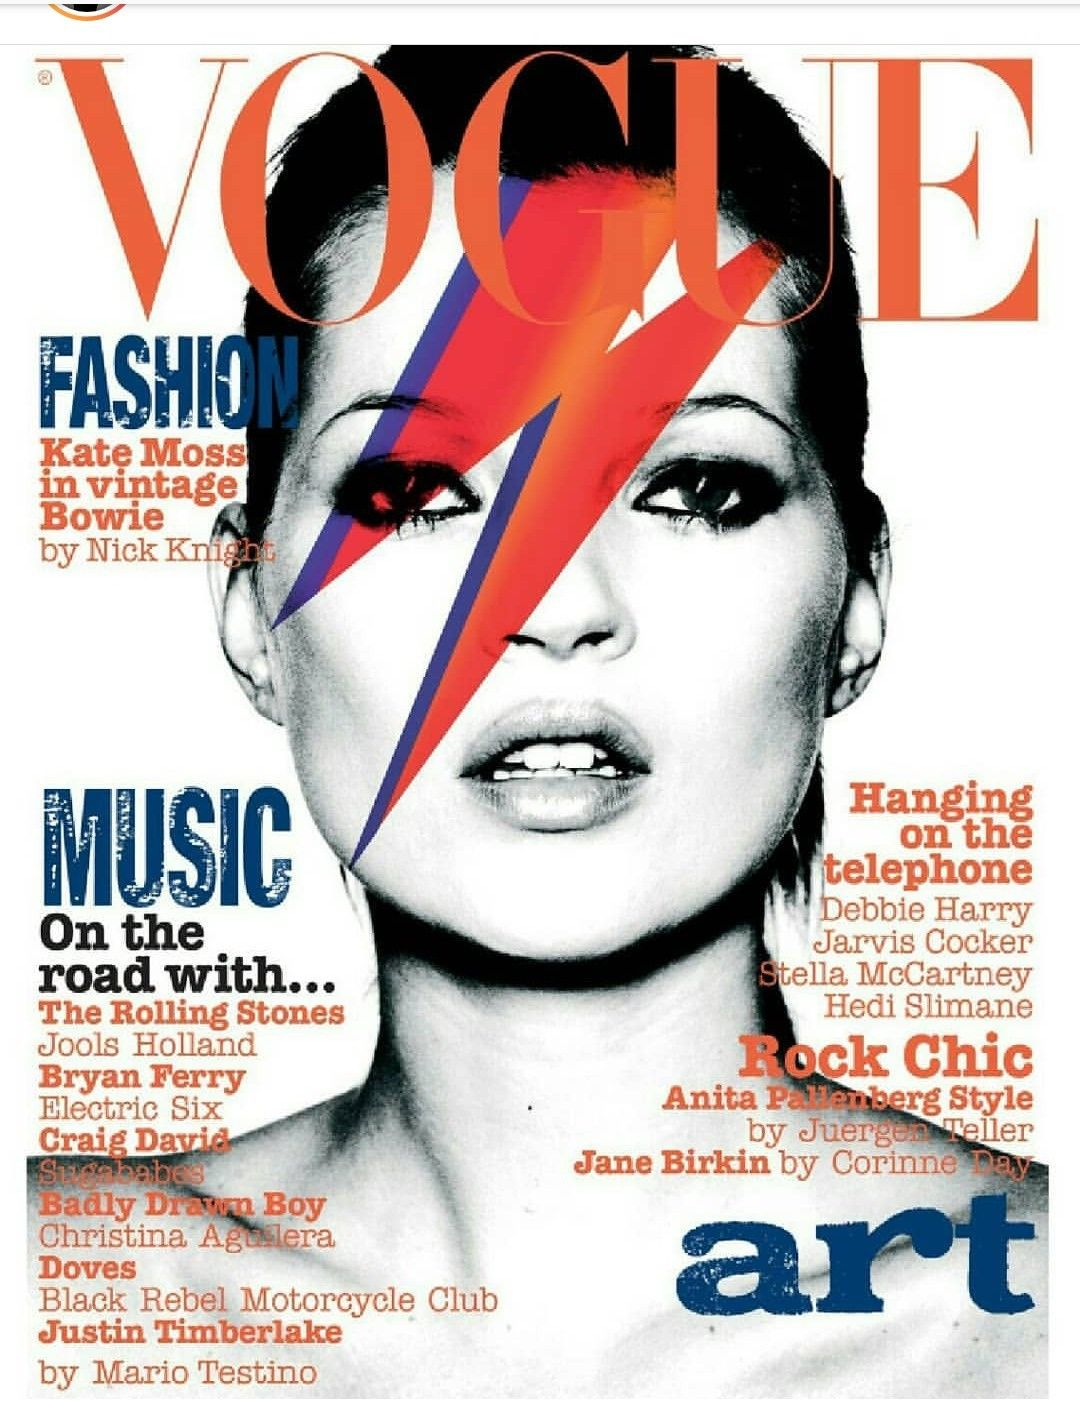 Kate Moss By Nick Knight For Vogue Uk May 2003 Vogue Covers